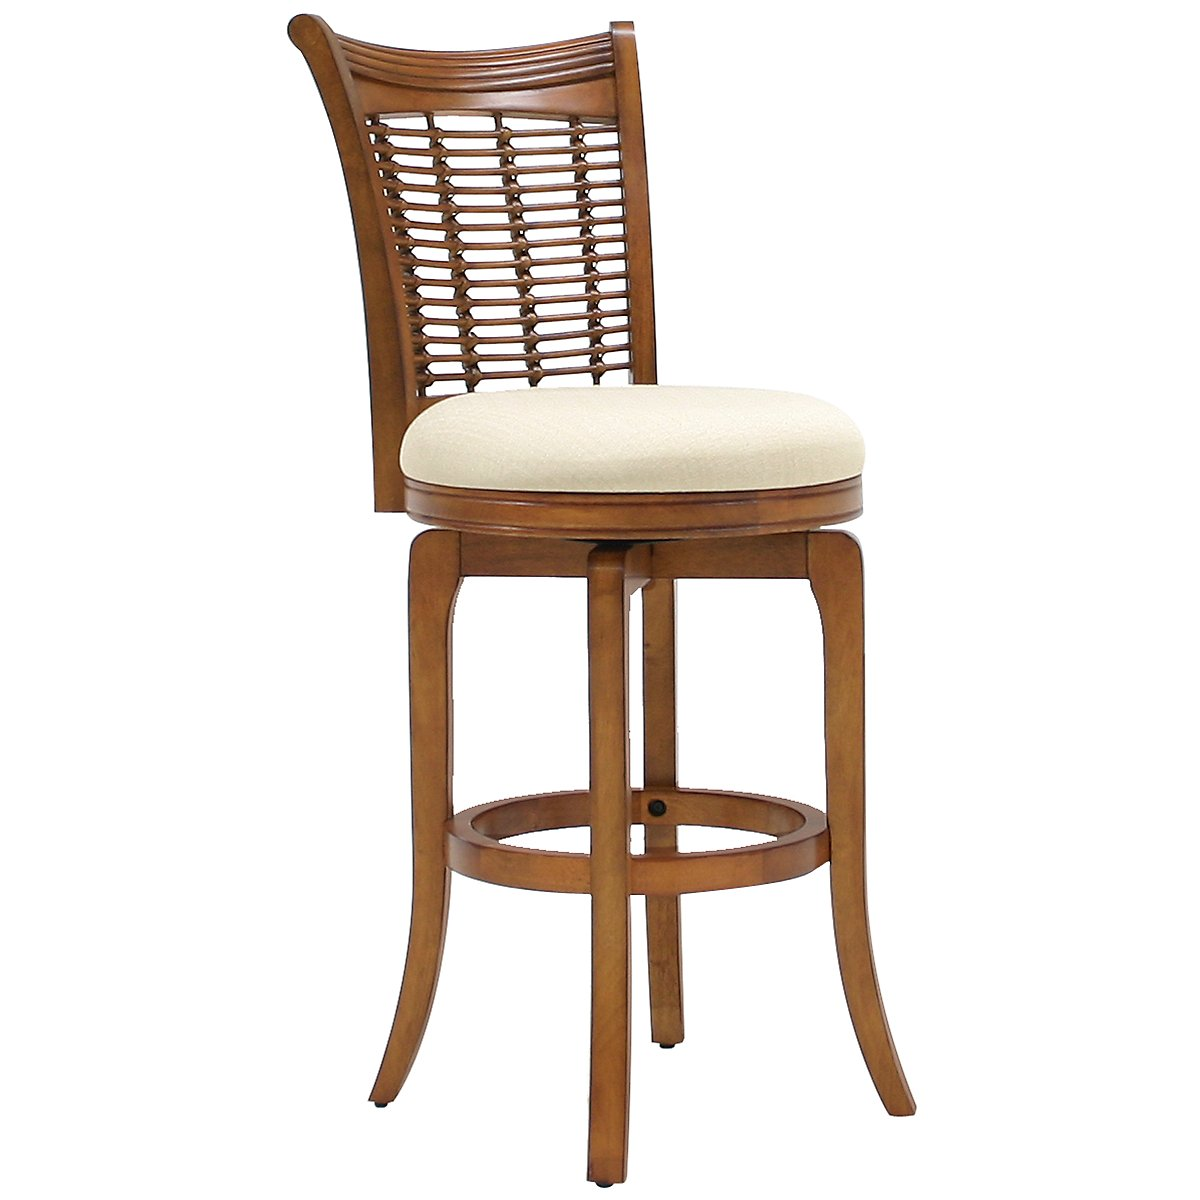 "Bayberry Mid Tone 30"" Swivel Barstool"